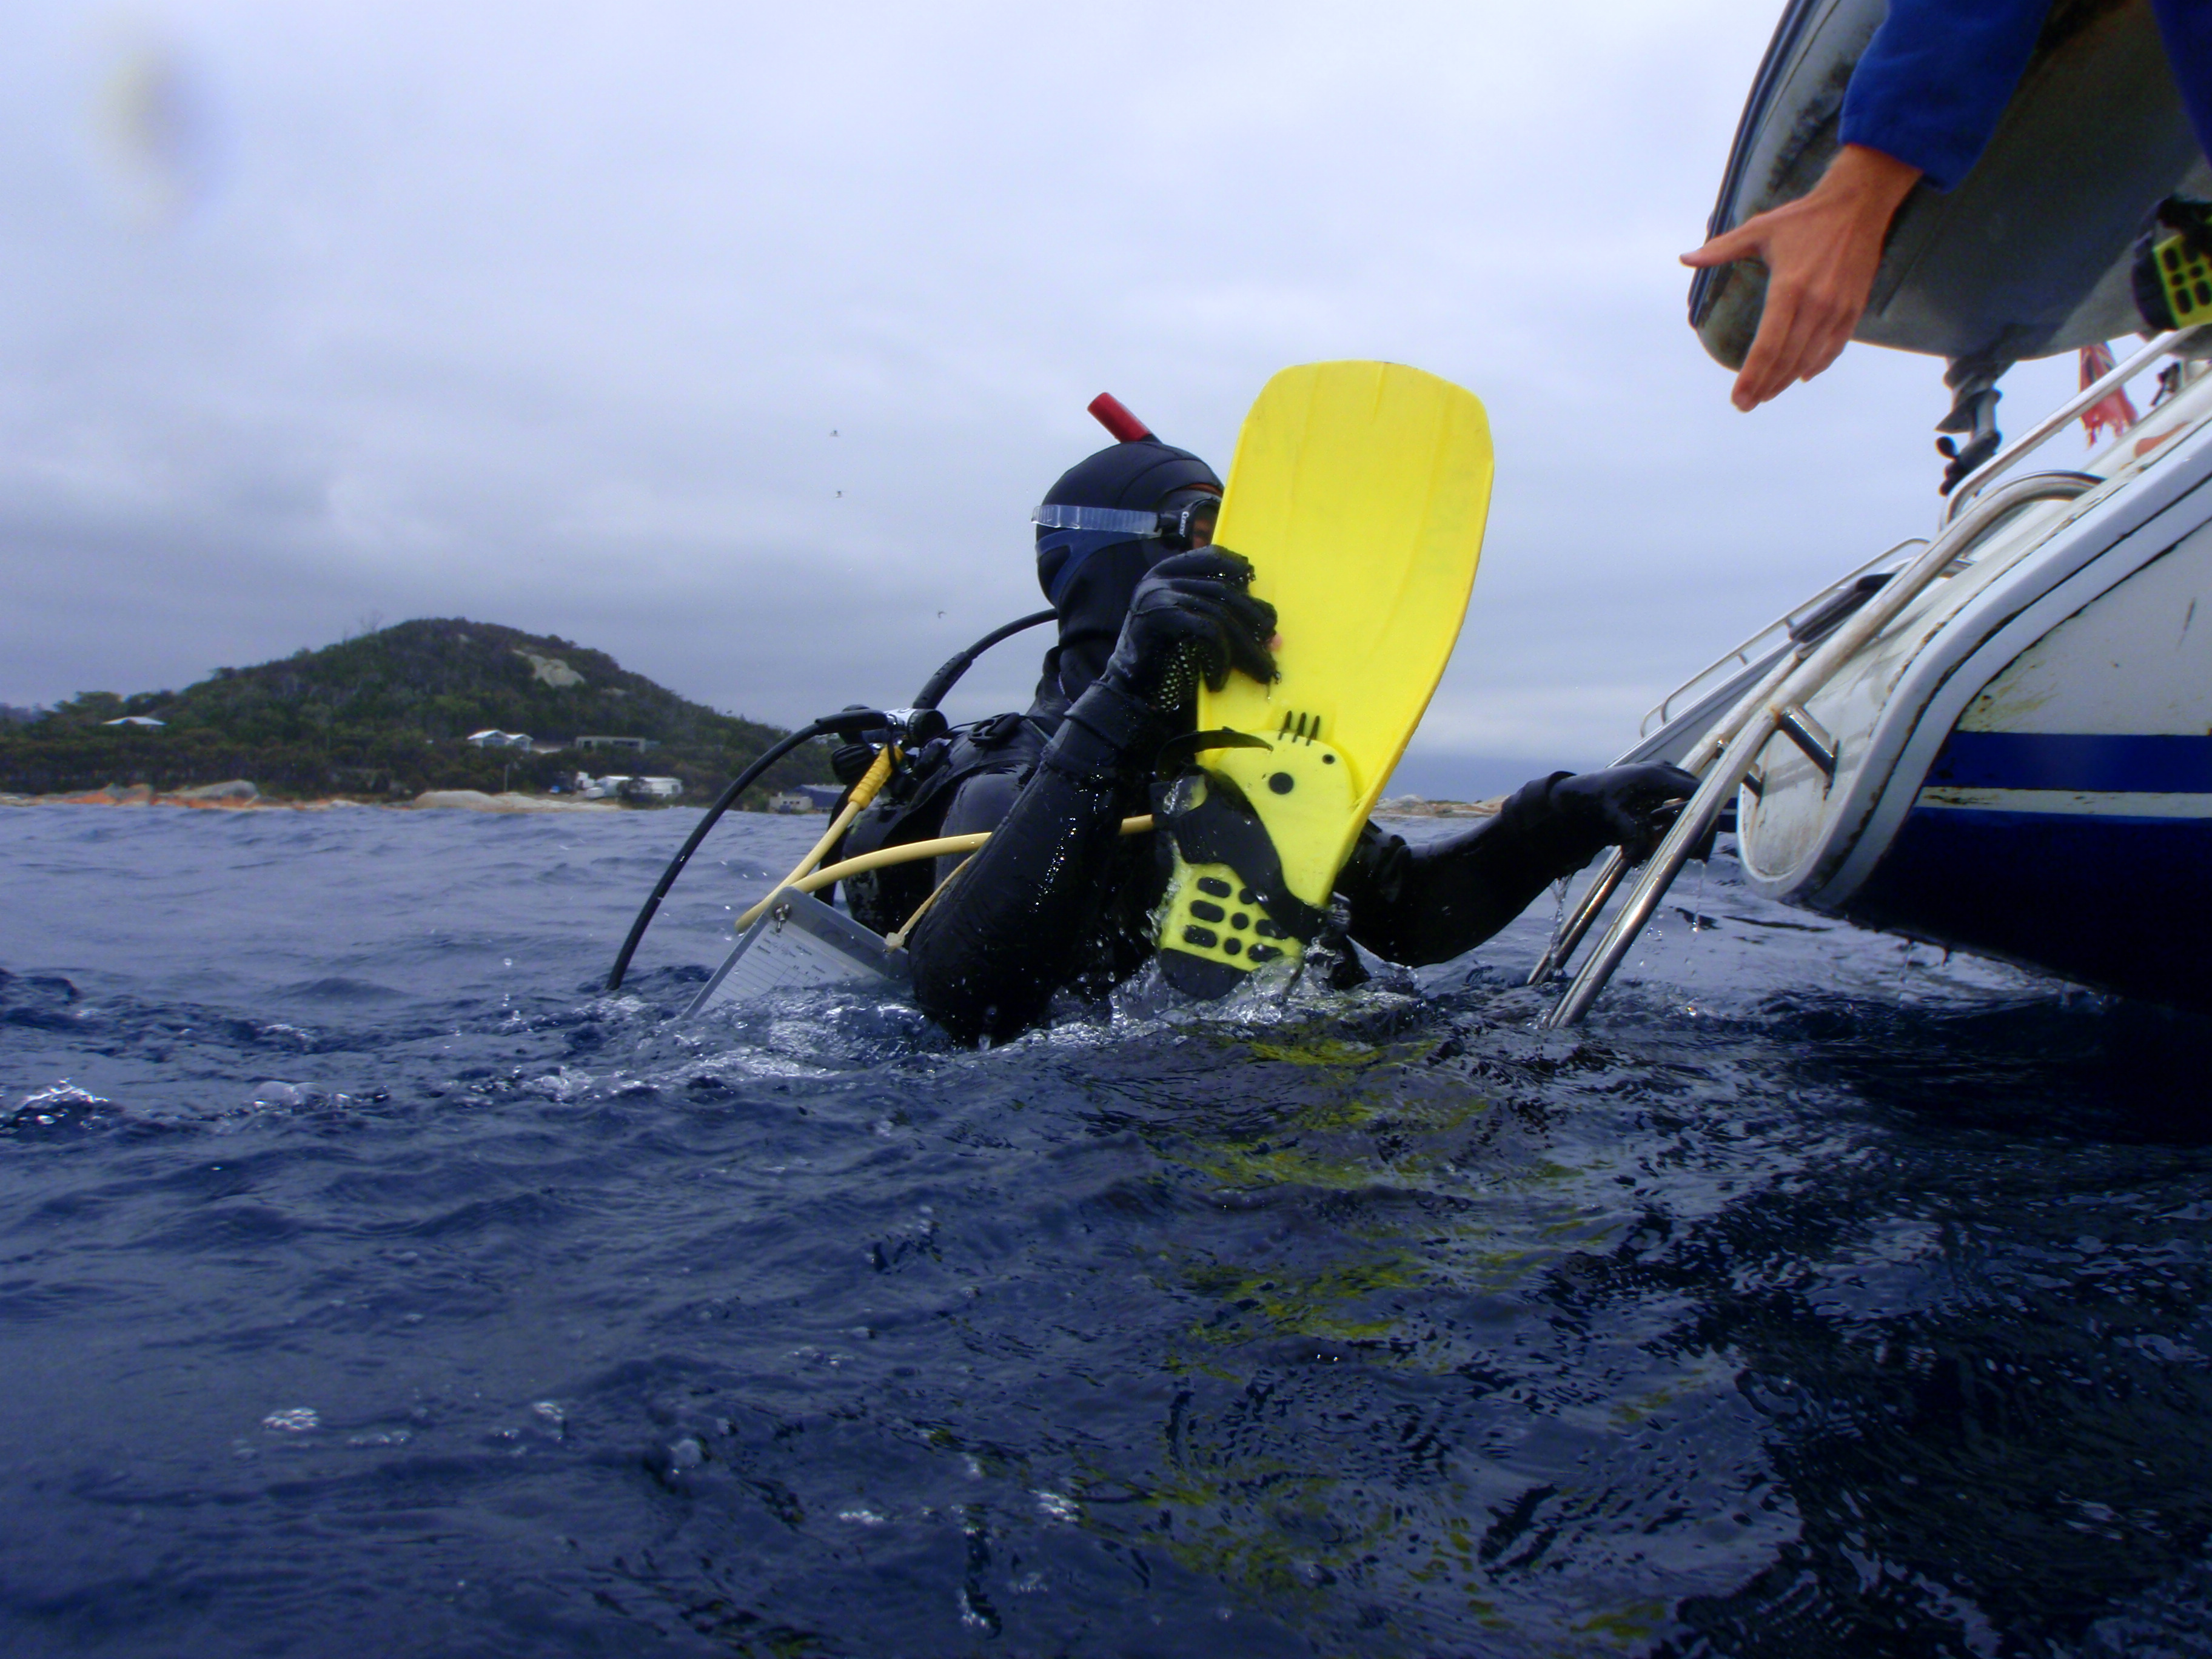 scuba diver teaching water safety